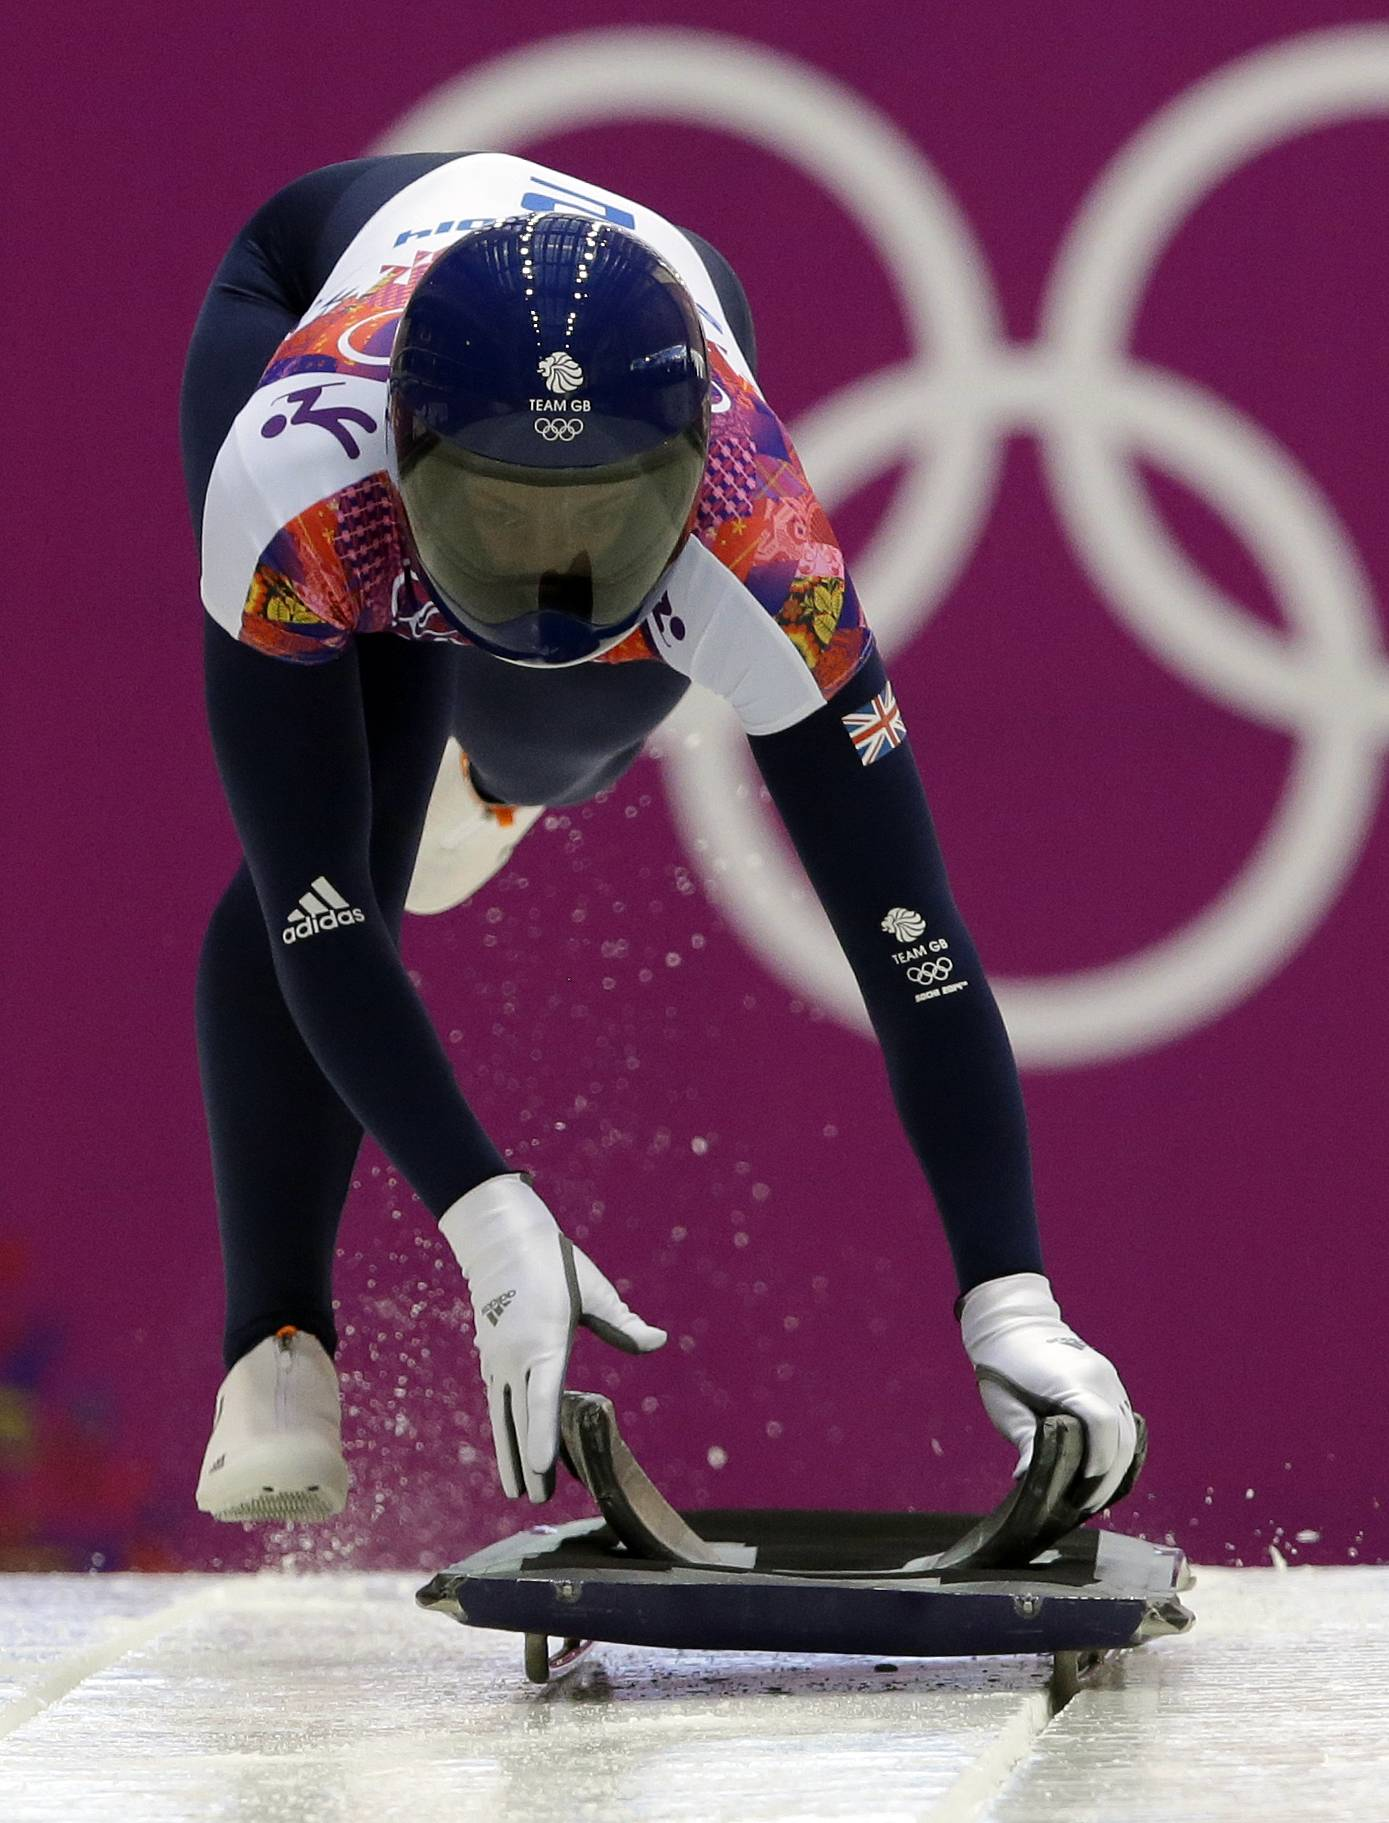 Elizabeth Yarnold starts her first run Thursday during the women's skeleton competition at the 2014 Winter Olympics in Krasnaya Polyana, Russia.